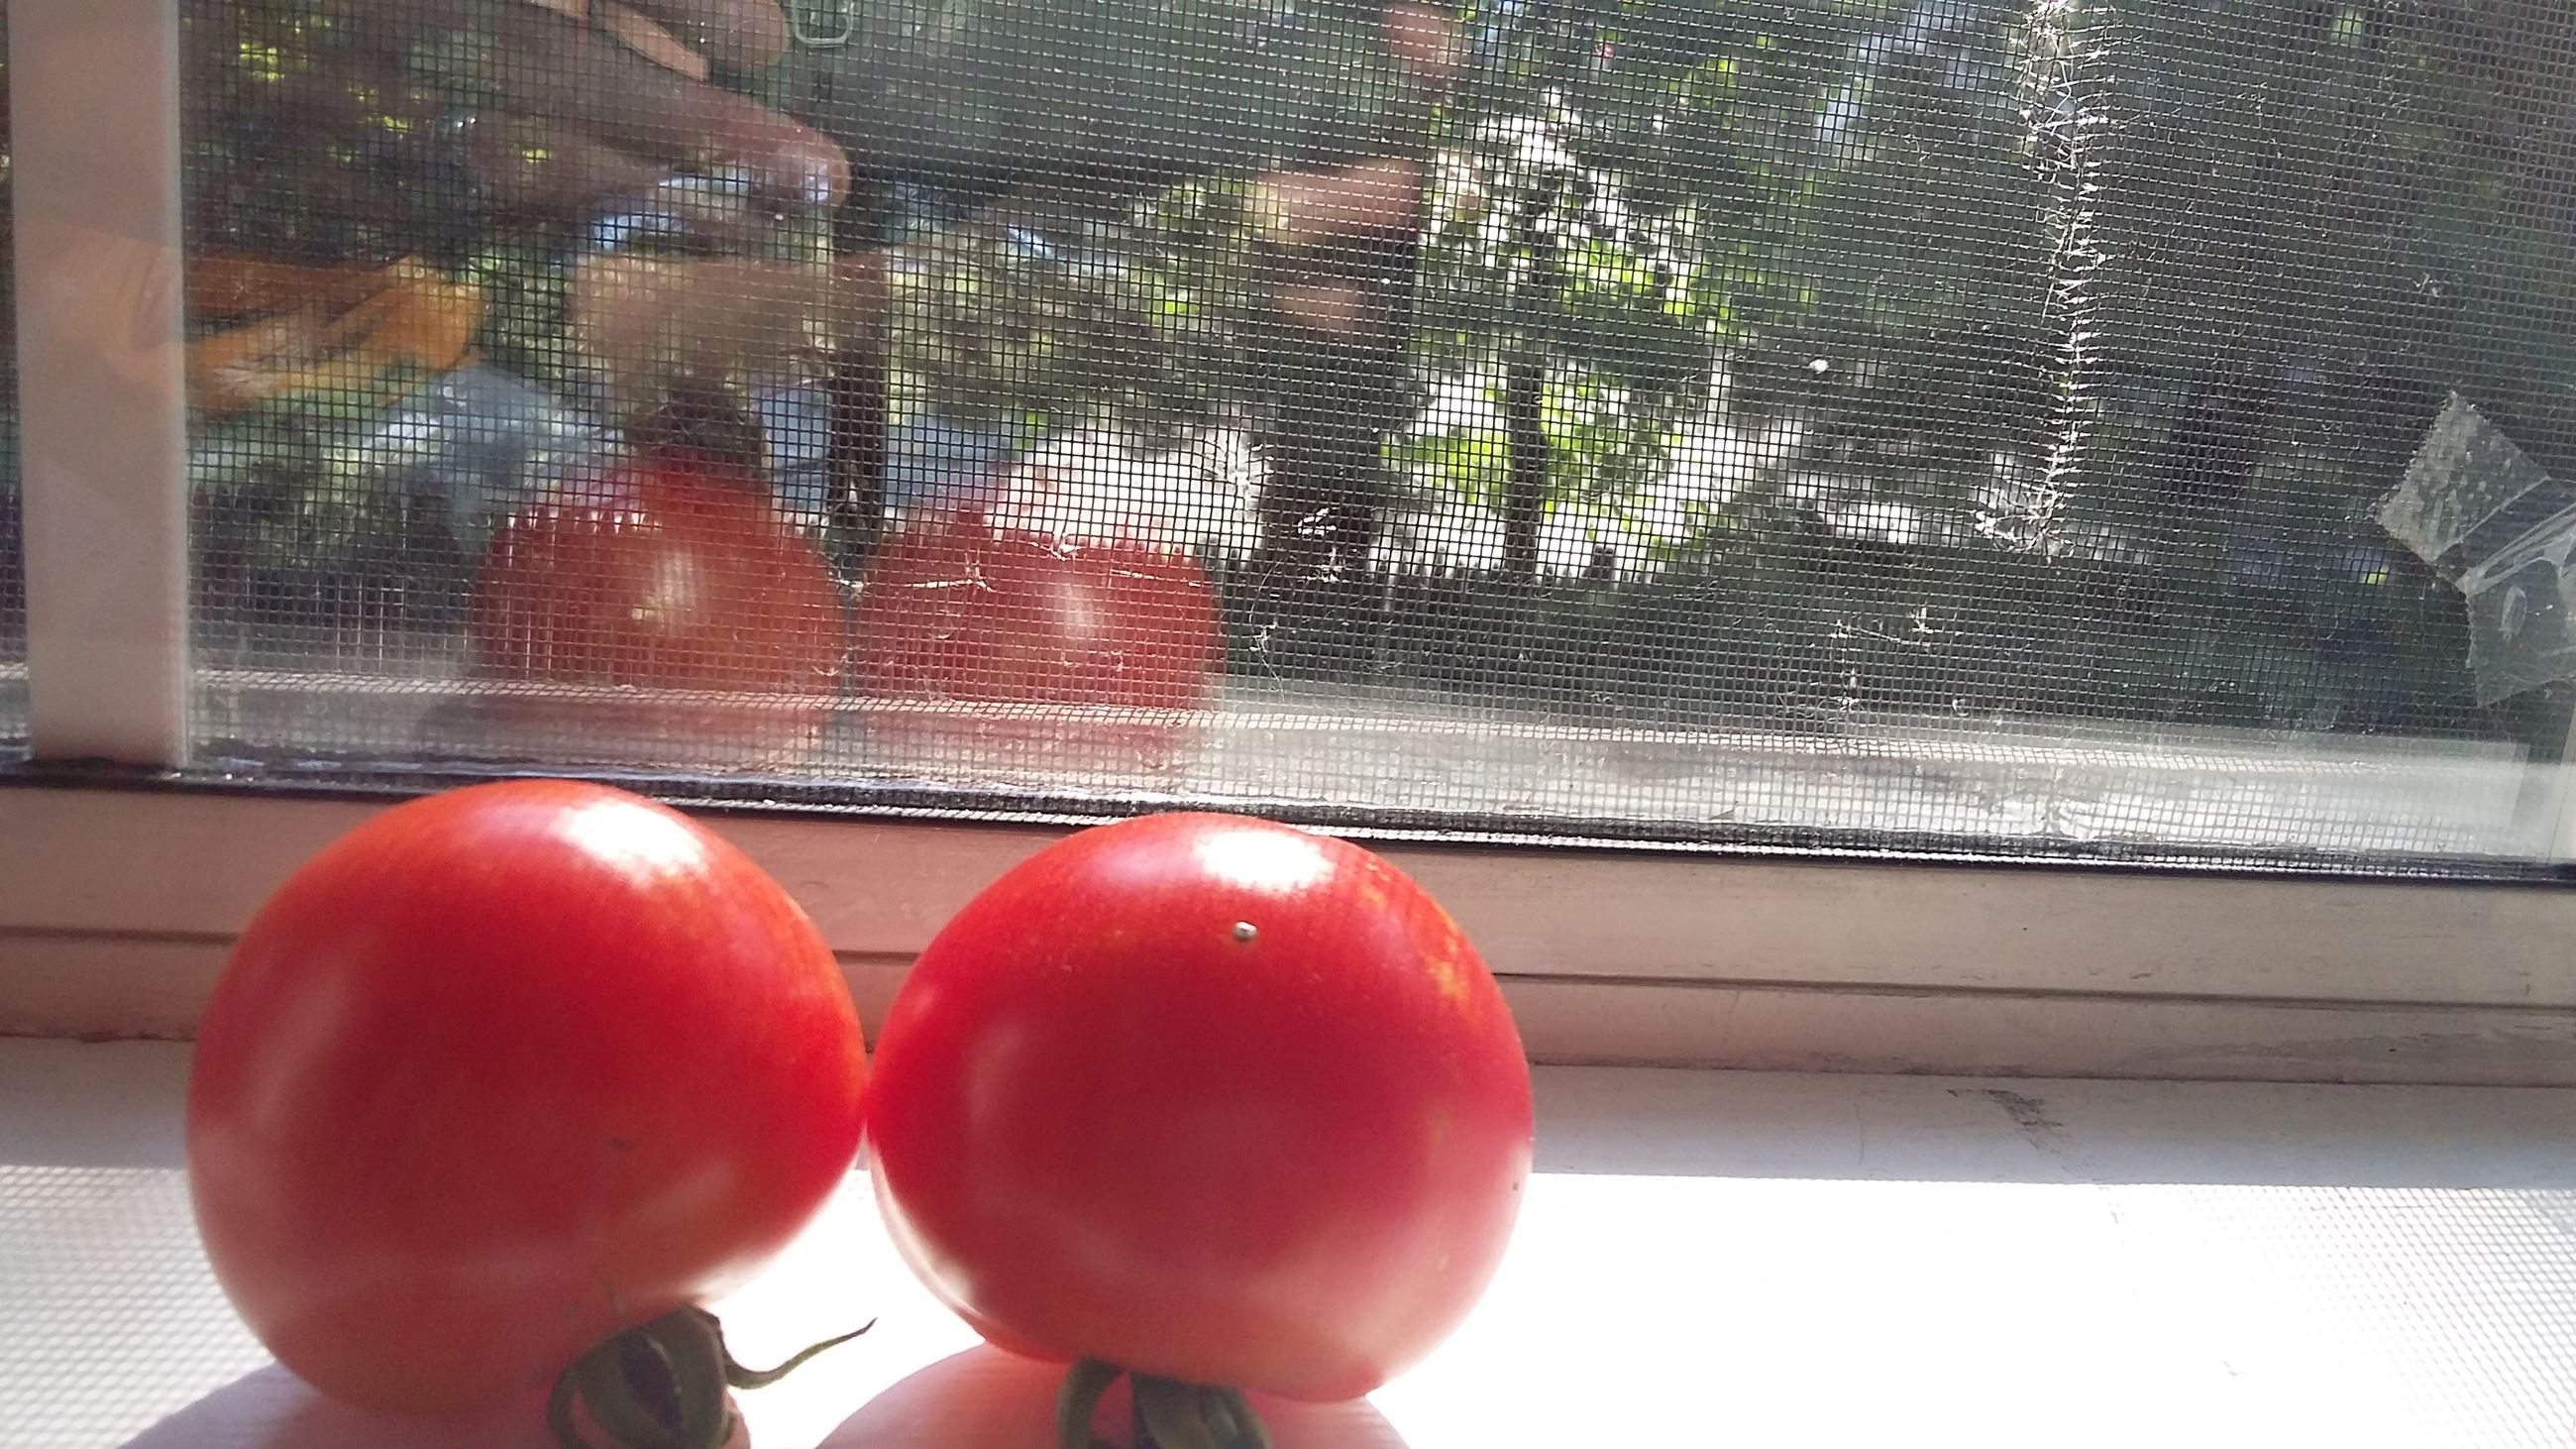 Sally's tomatoes on the windowsill